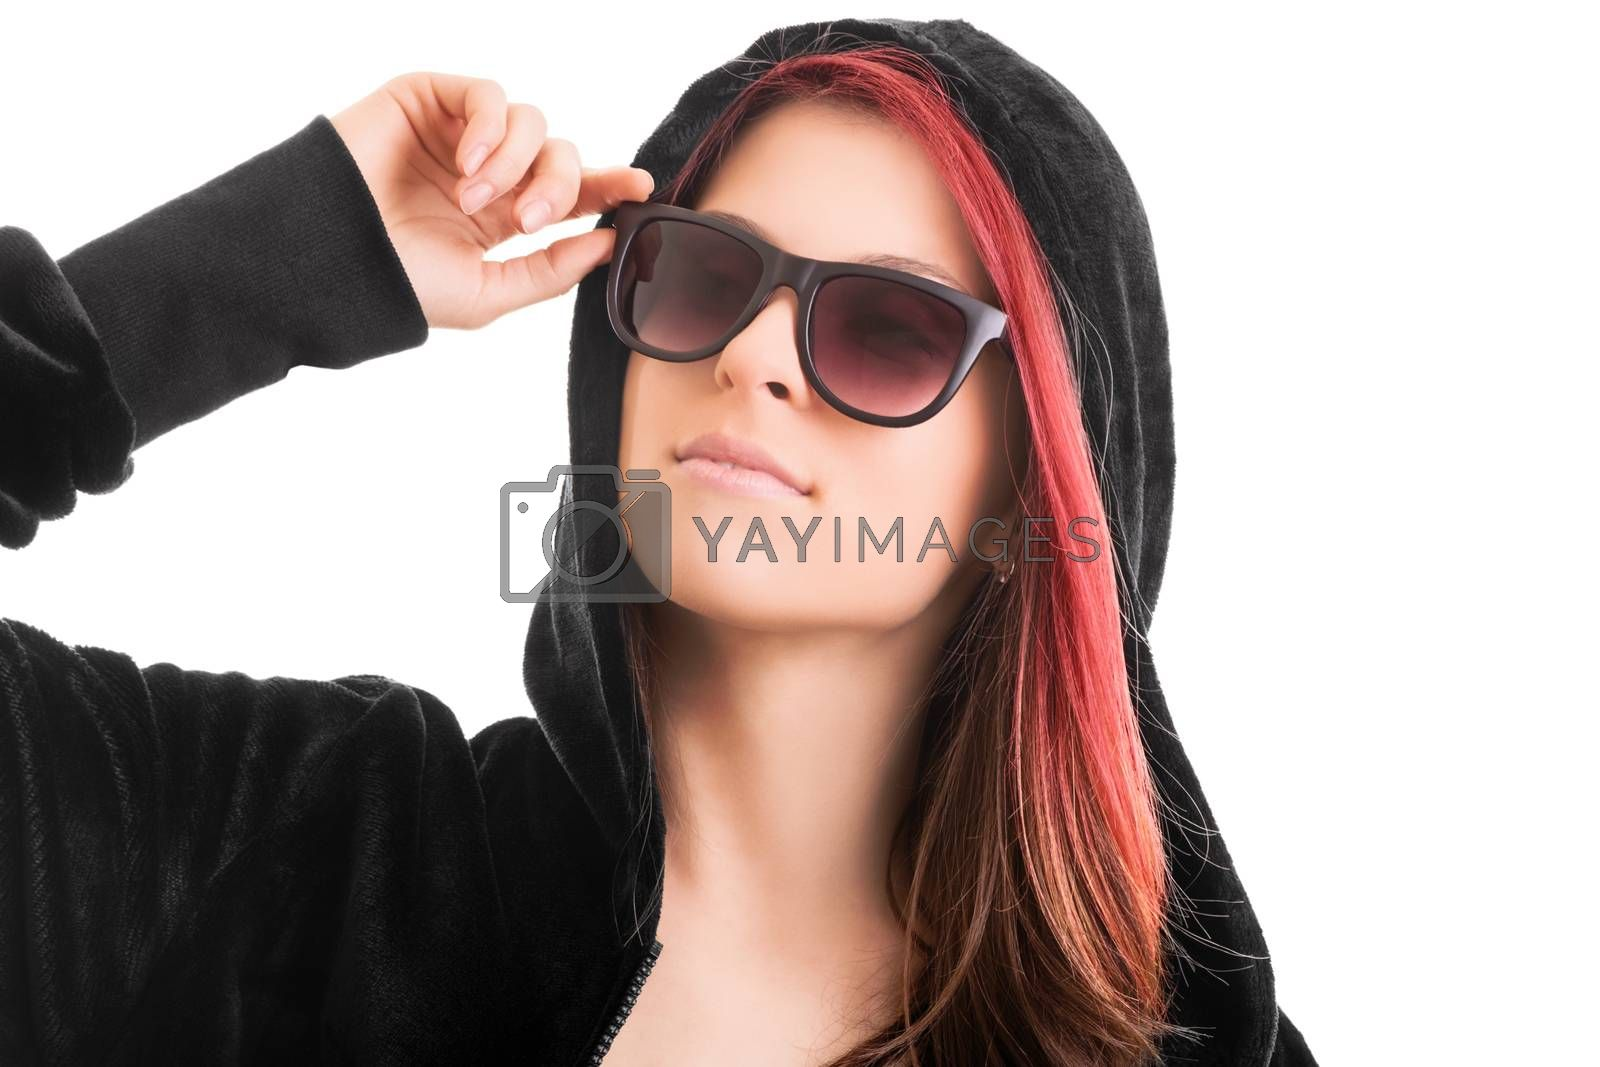 Beautiful stylish girl with black hoodie and sunglasses, isolated on white background. Tomboy female with black hoody and sunglasses. Rebel concept.